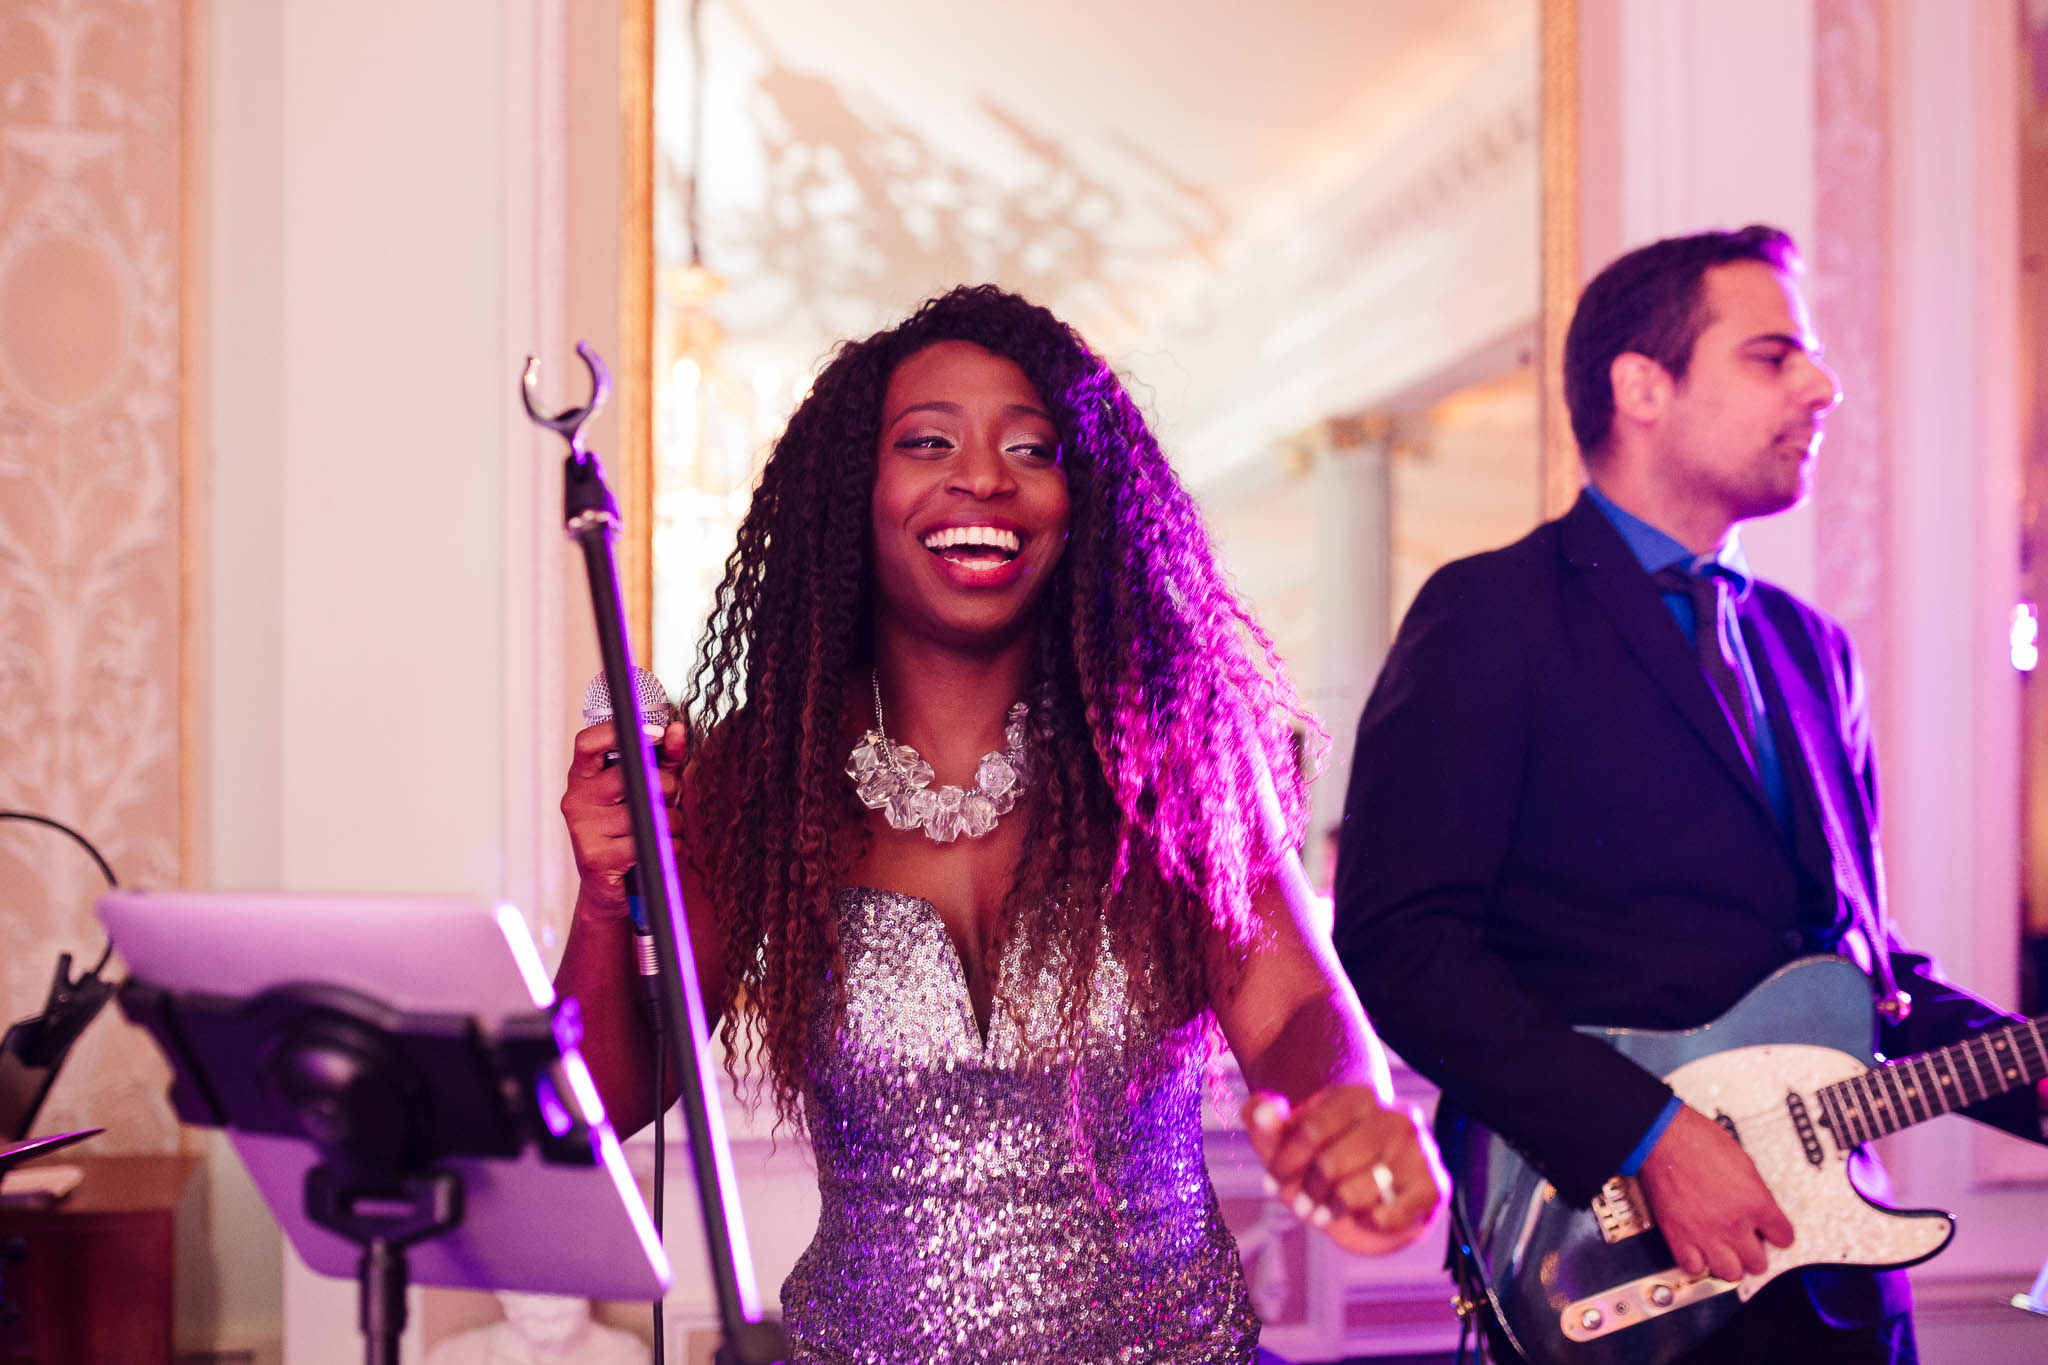 singer smiling at wedding